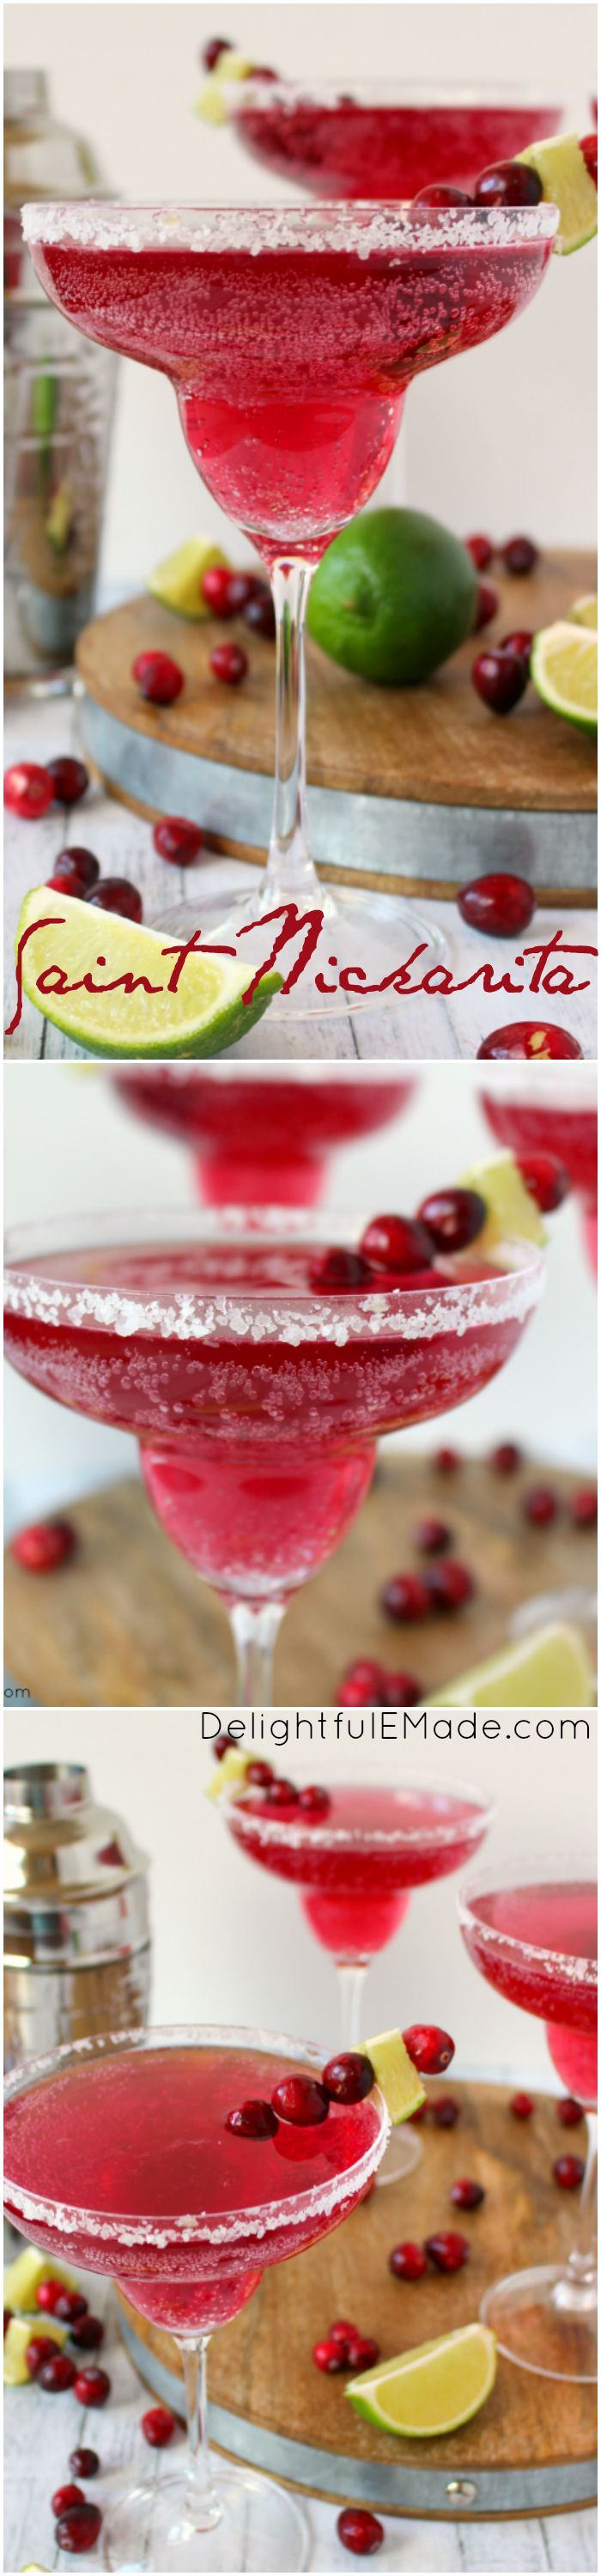 Cranberry and lime flavors come together with tequila for the most amazing holiday cocktail! Perfect for all of your Christmas parties and holiday gatherings, this easy, delicious margarita is perfect for enjoying under the mistletoe!